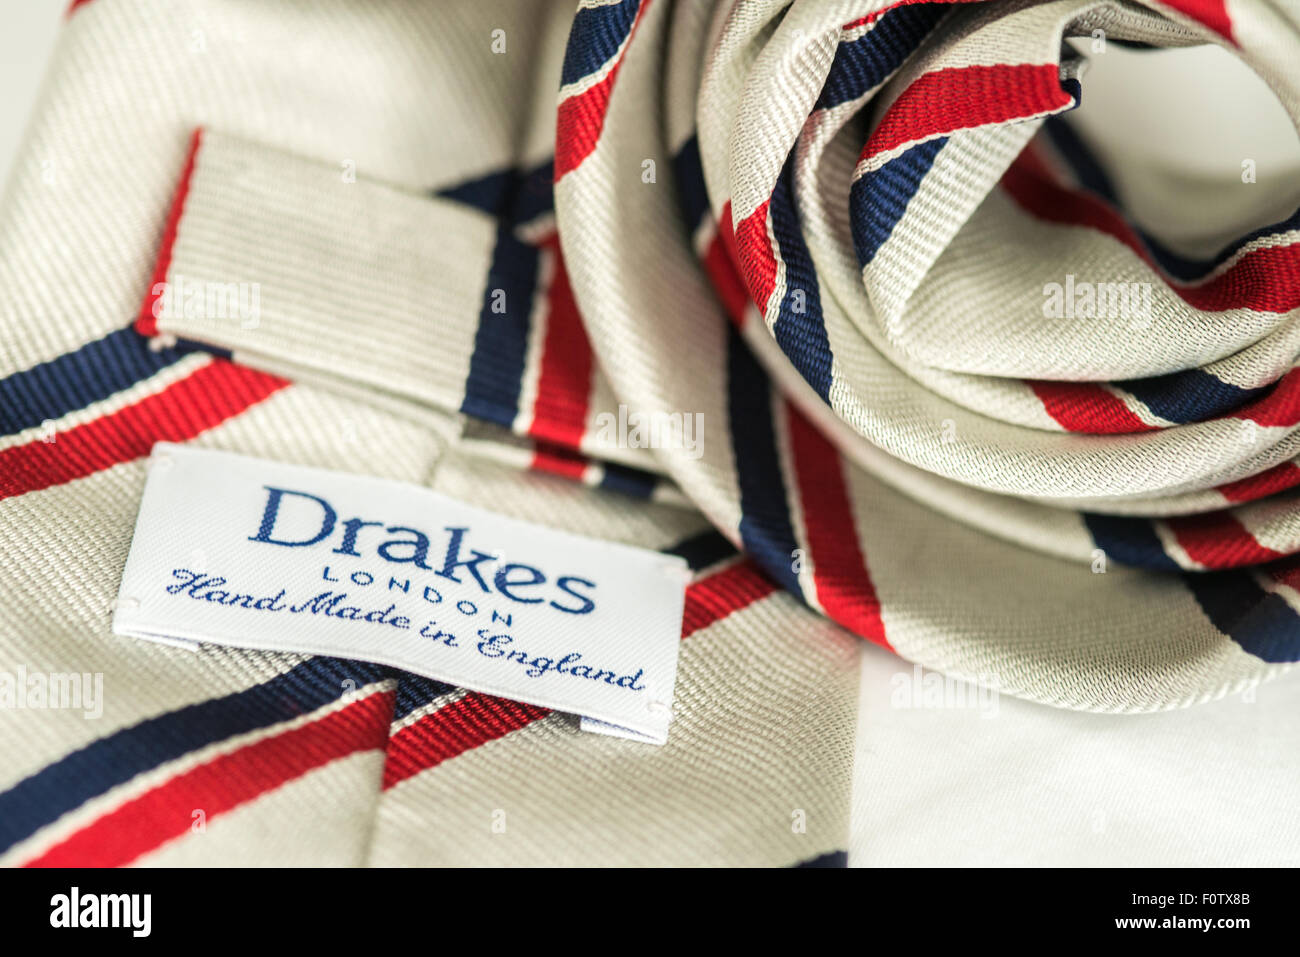 Drake tie, Drakes London hand made in England - Stock Image